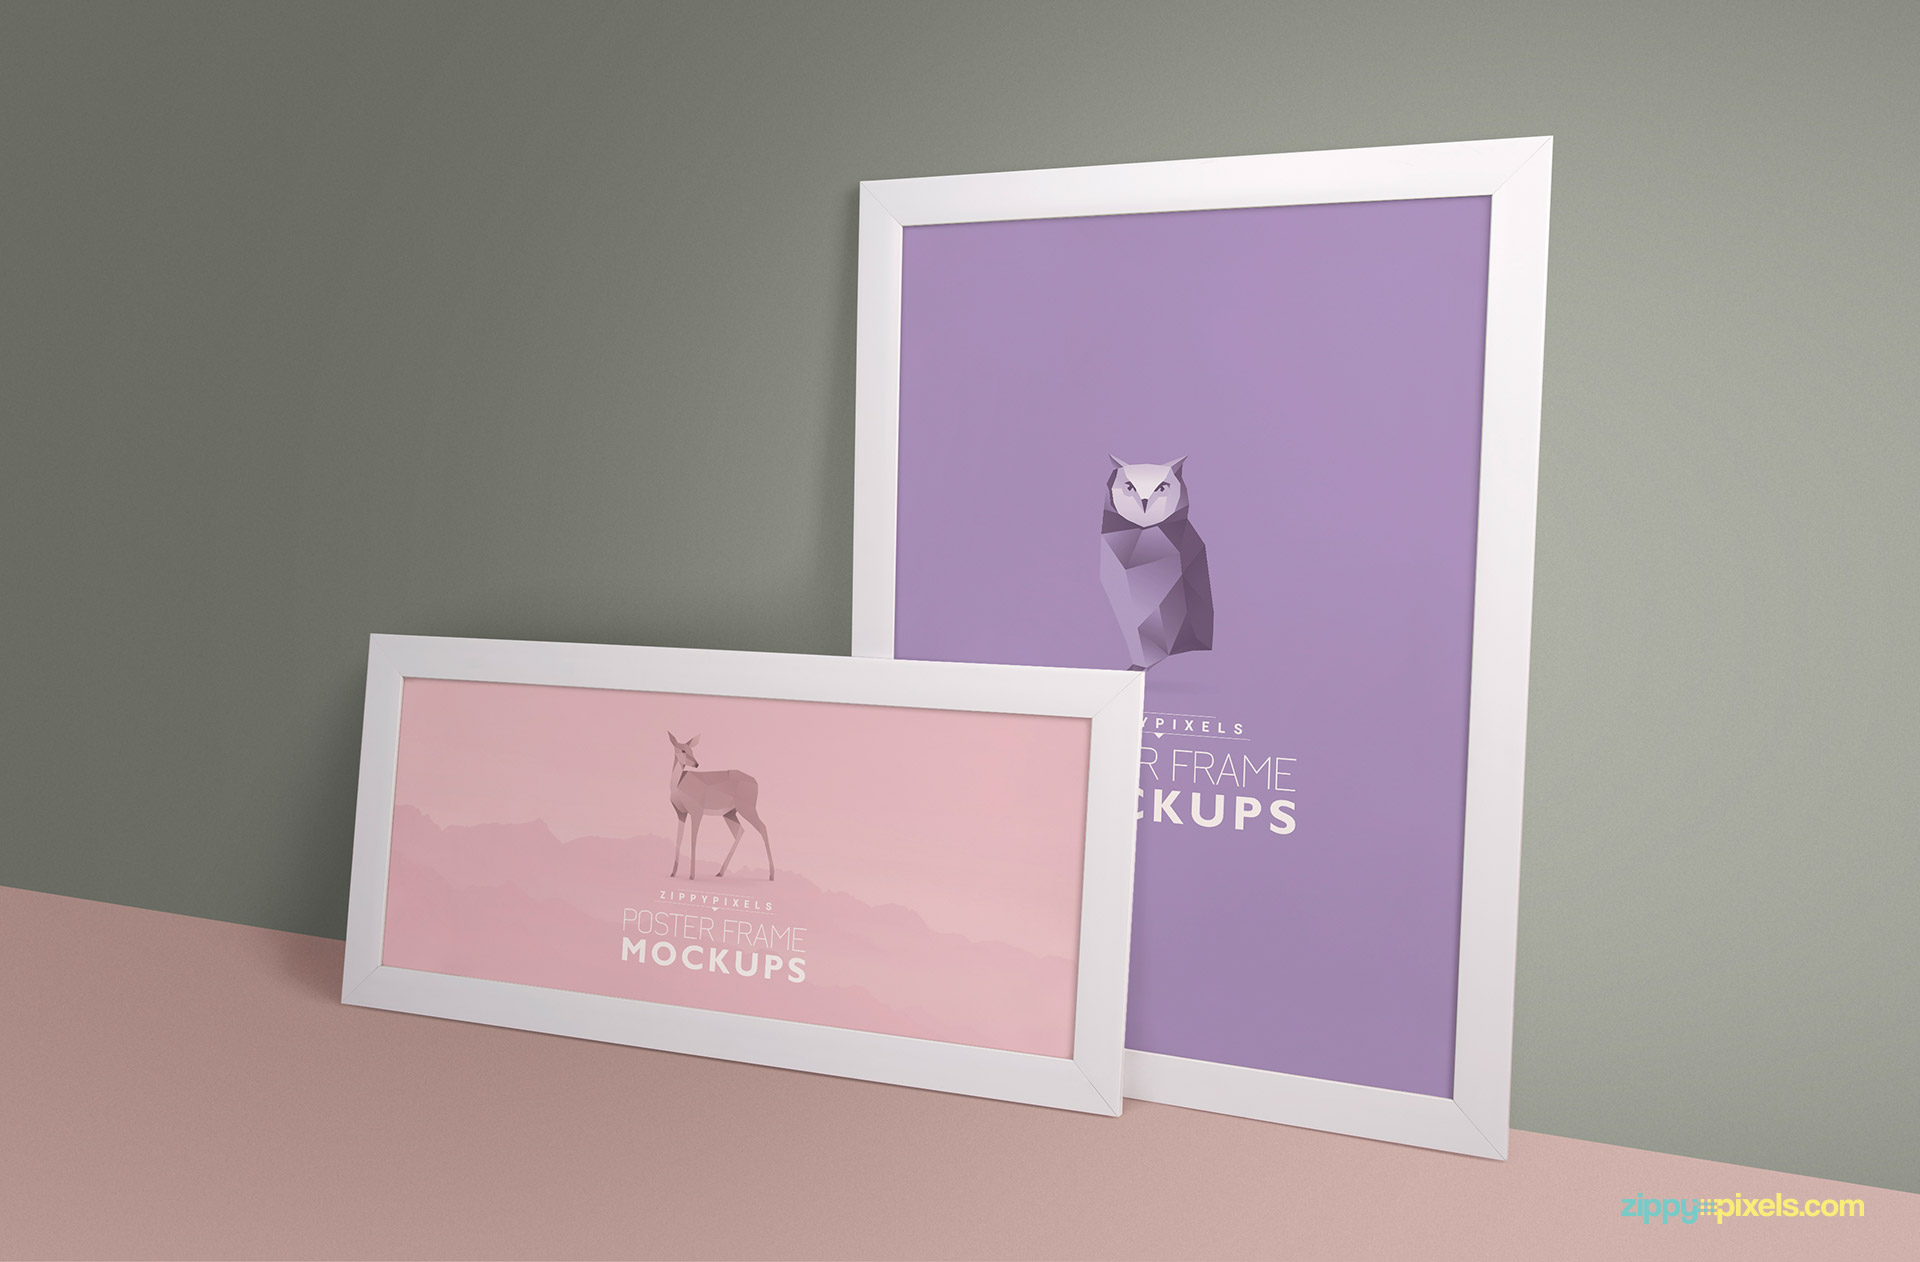 PSD mockup of two poster frames